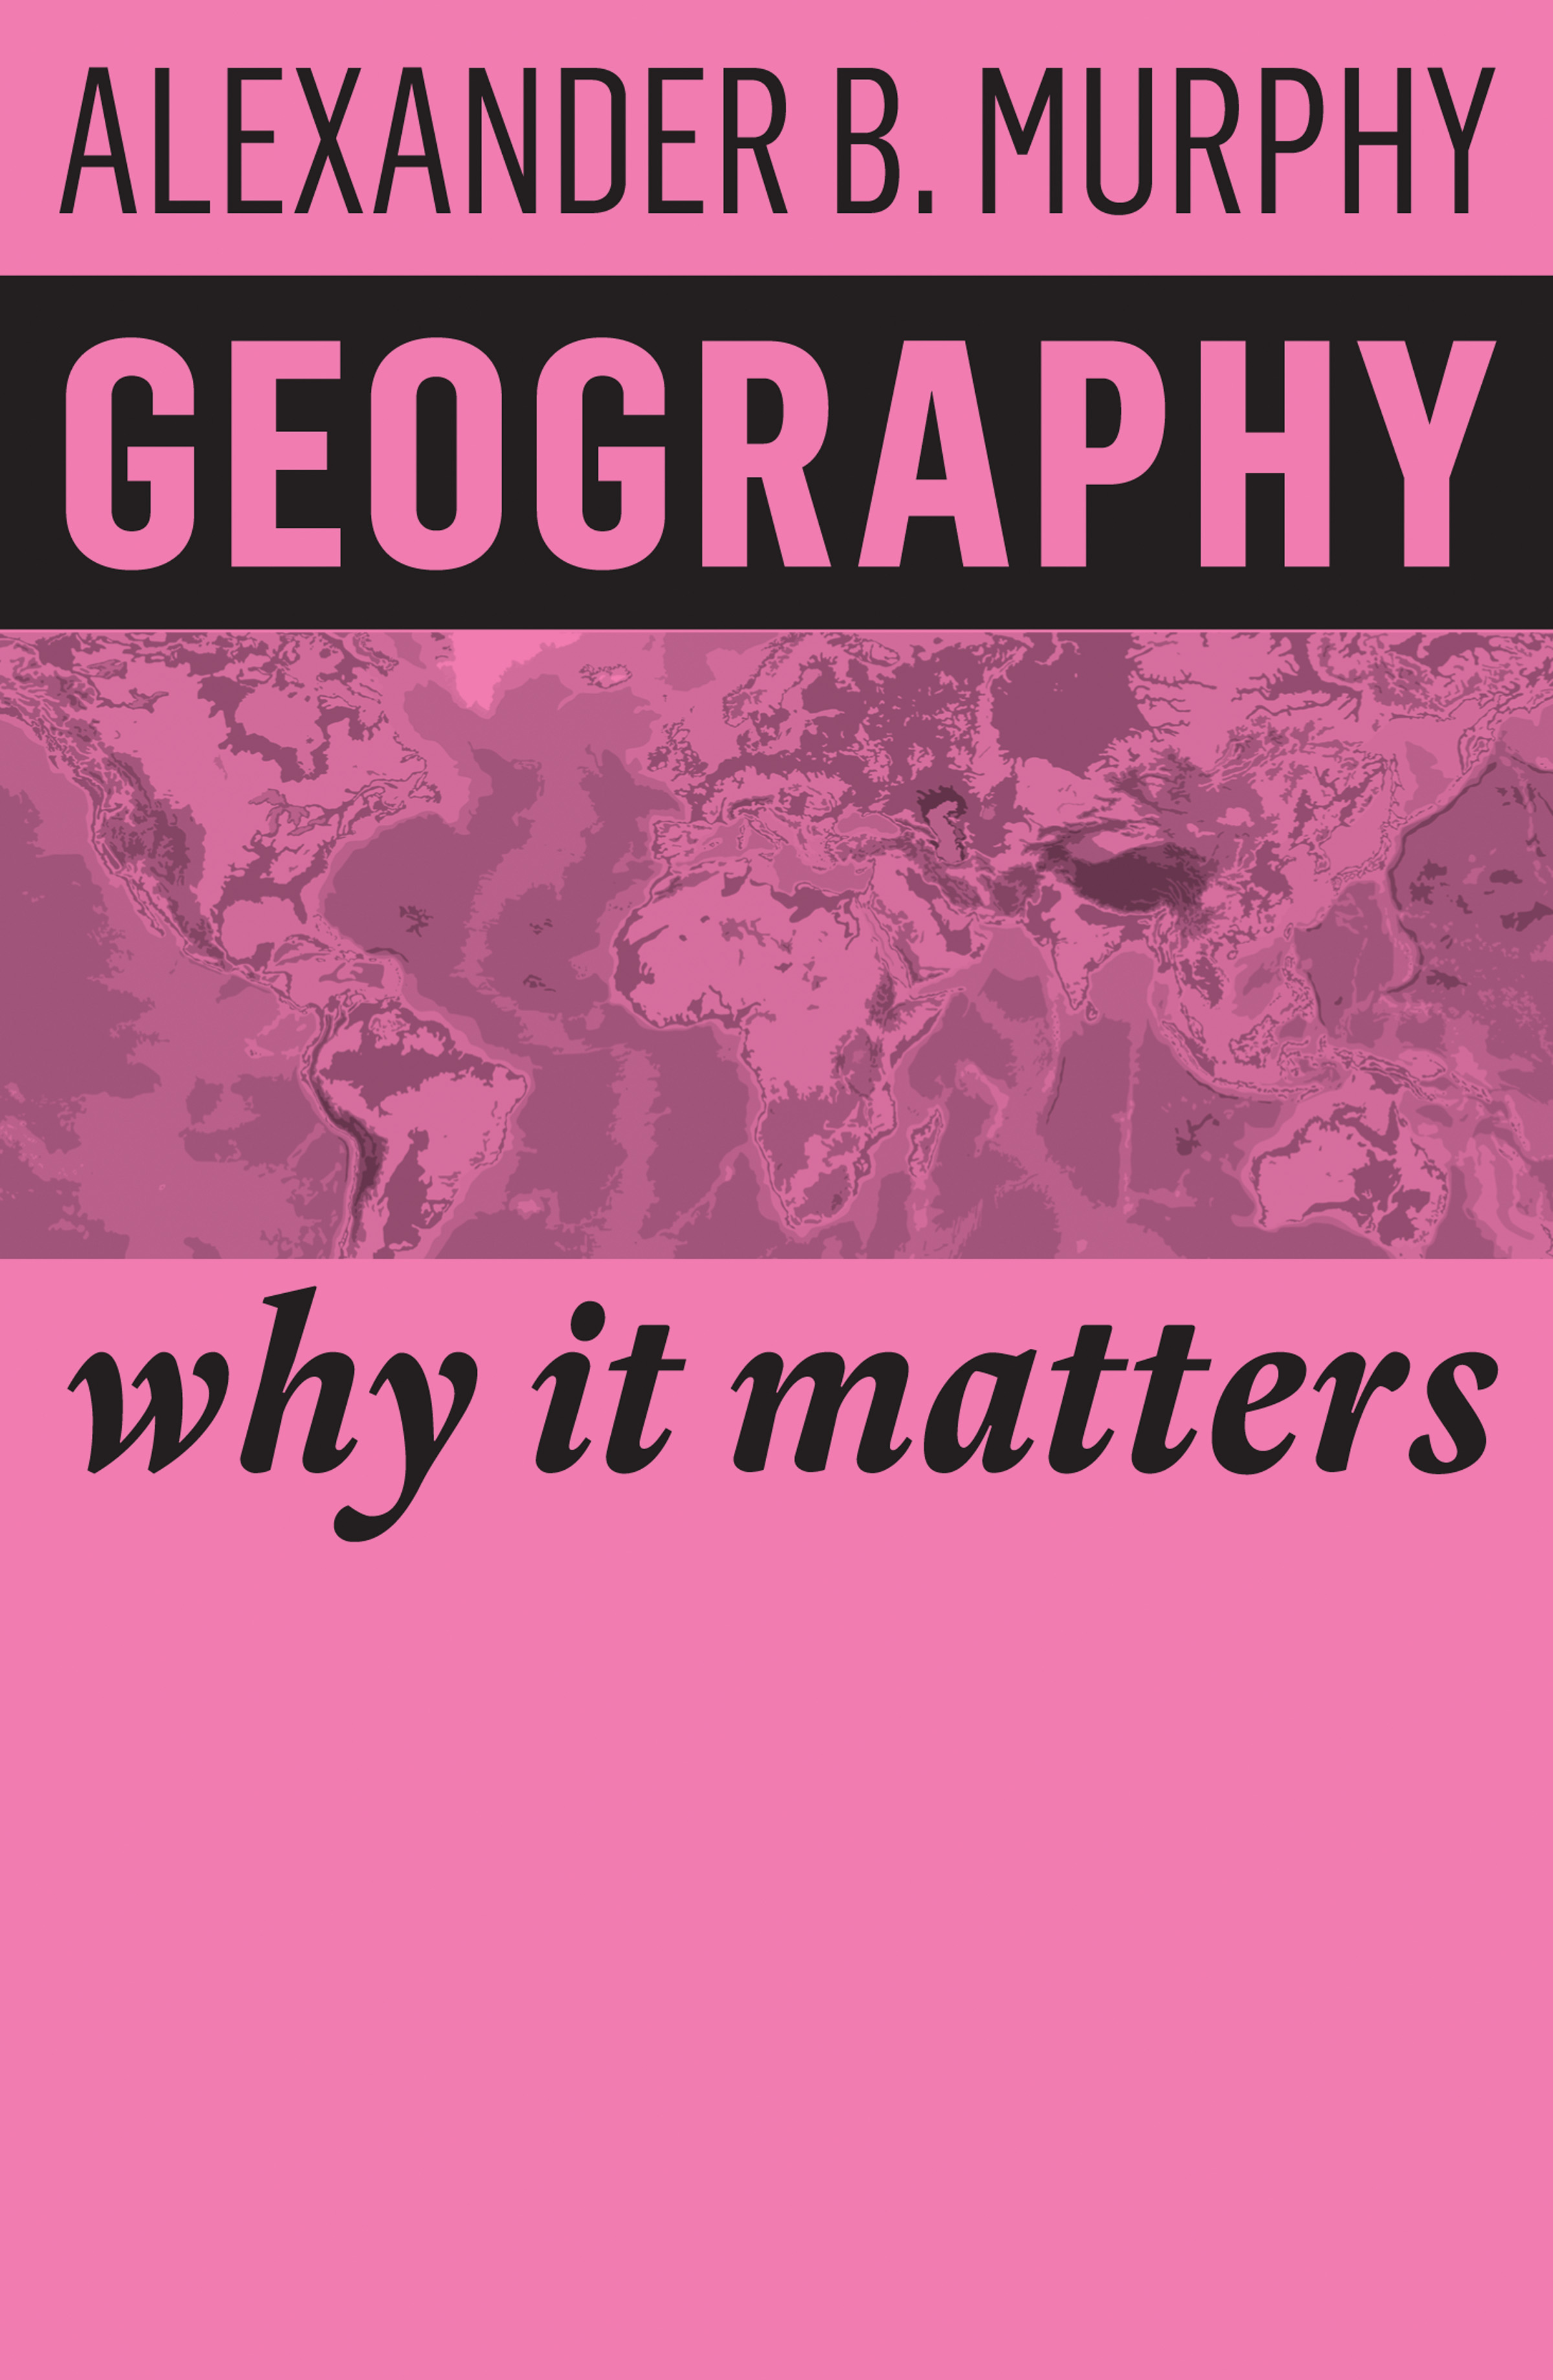 geography matters essay Geography is unique in bridging the social sciences and the natural sciences there are two main branches of geography: human geography and physical geography.